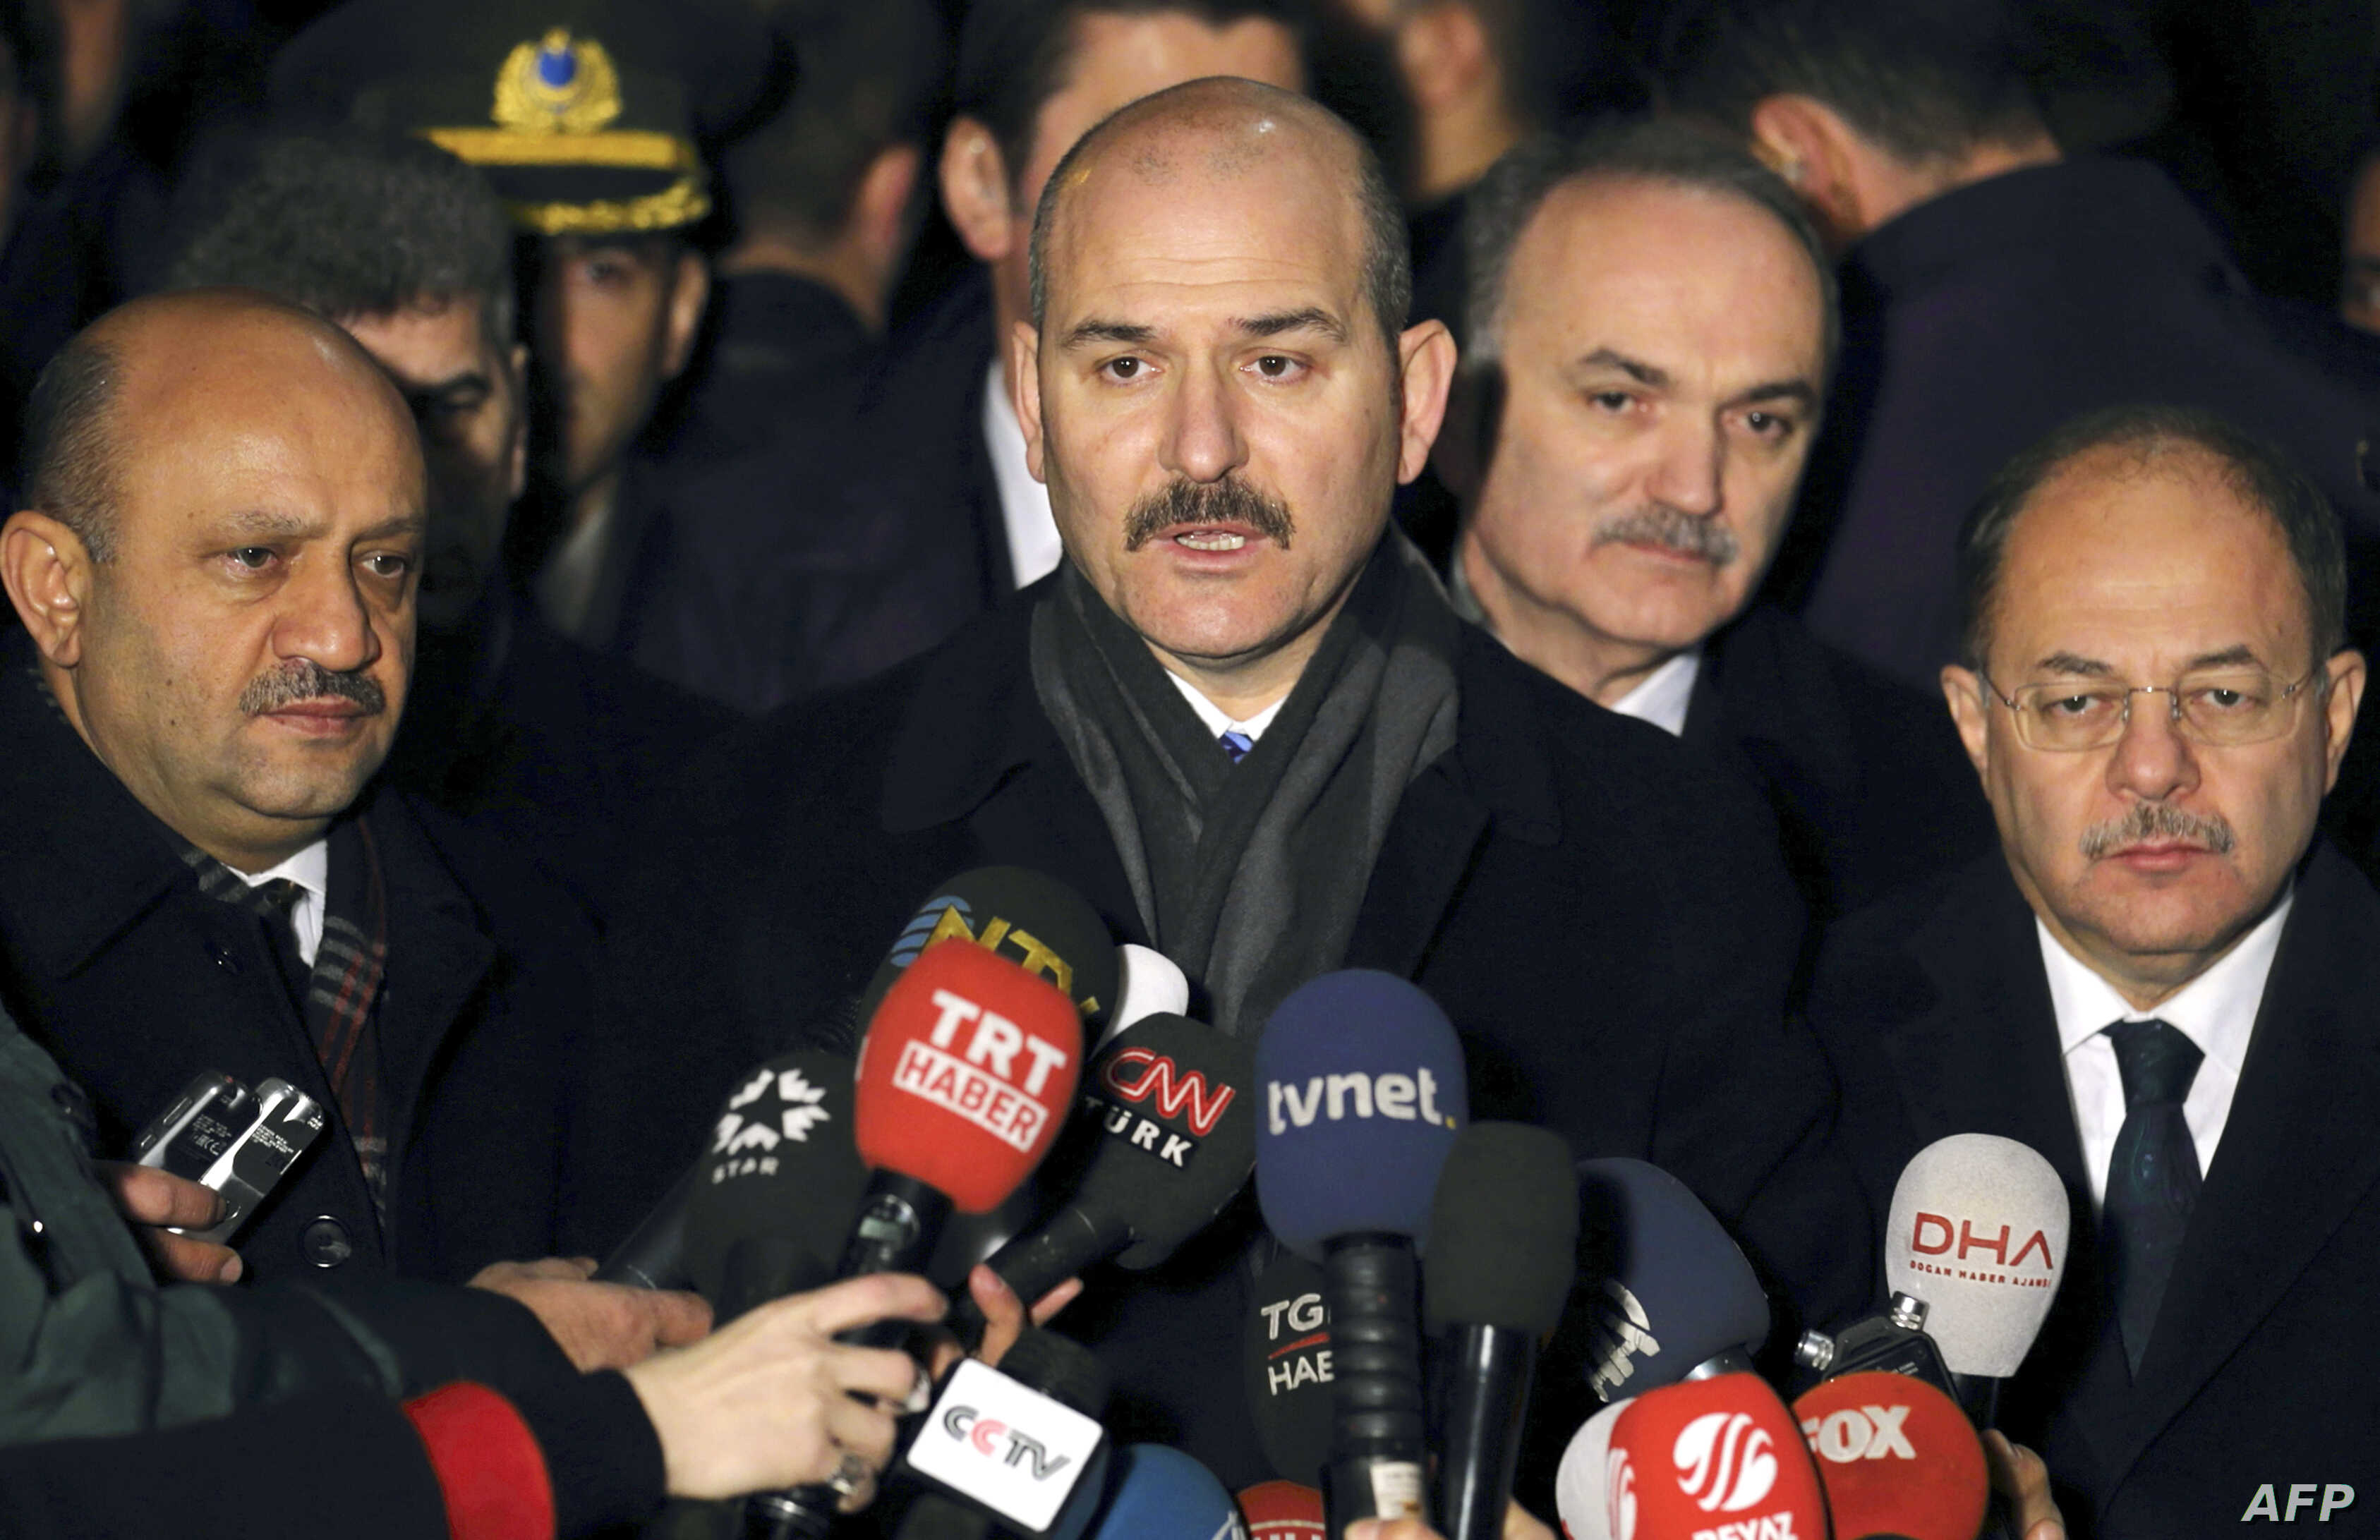 Turkish Minister of Interior, Suleyman Soylu speaks to journalists in Ankara on Dec. 19, 2016.